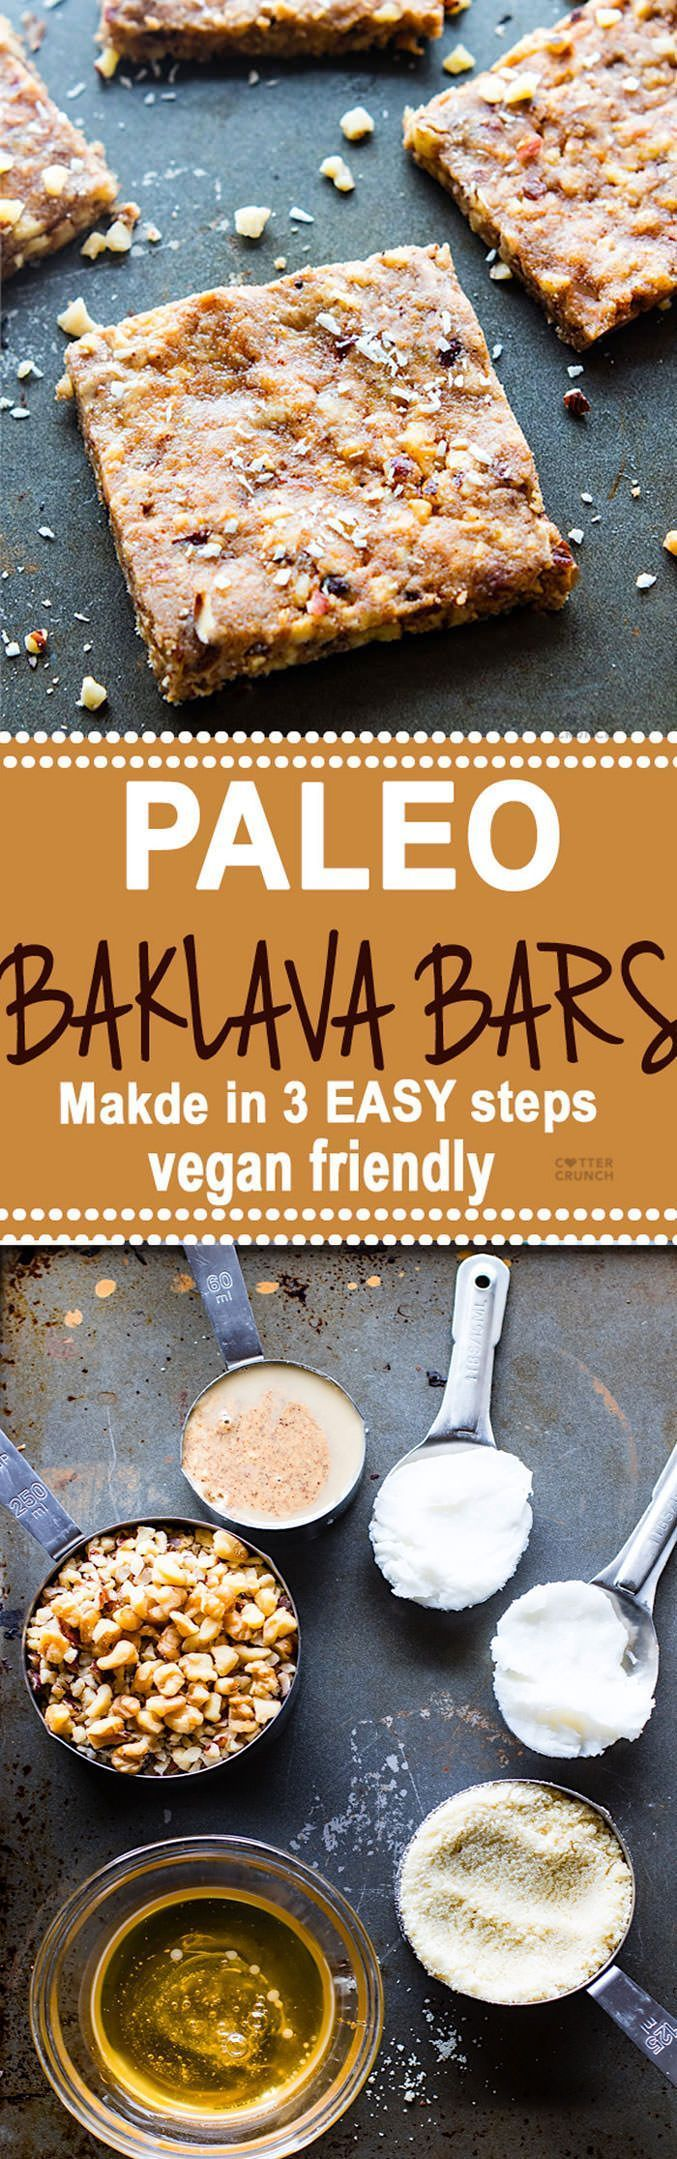 "Super easy 3 Step Paleo ""Baklava"" Bars! healthy vegan friendly bars that are packed full of sweet nutty flavor and healthy fats. Lower in carbs, sugar, and great for snacking."